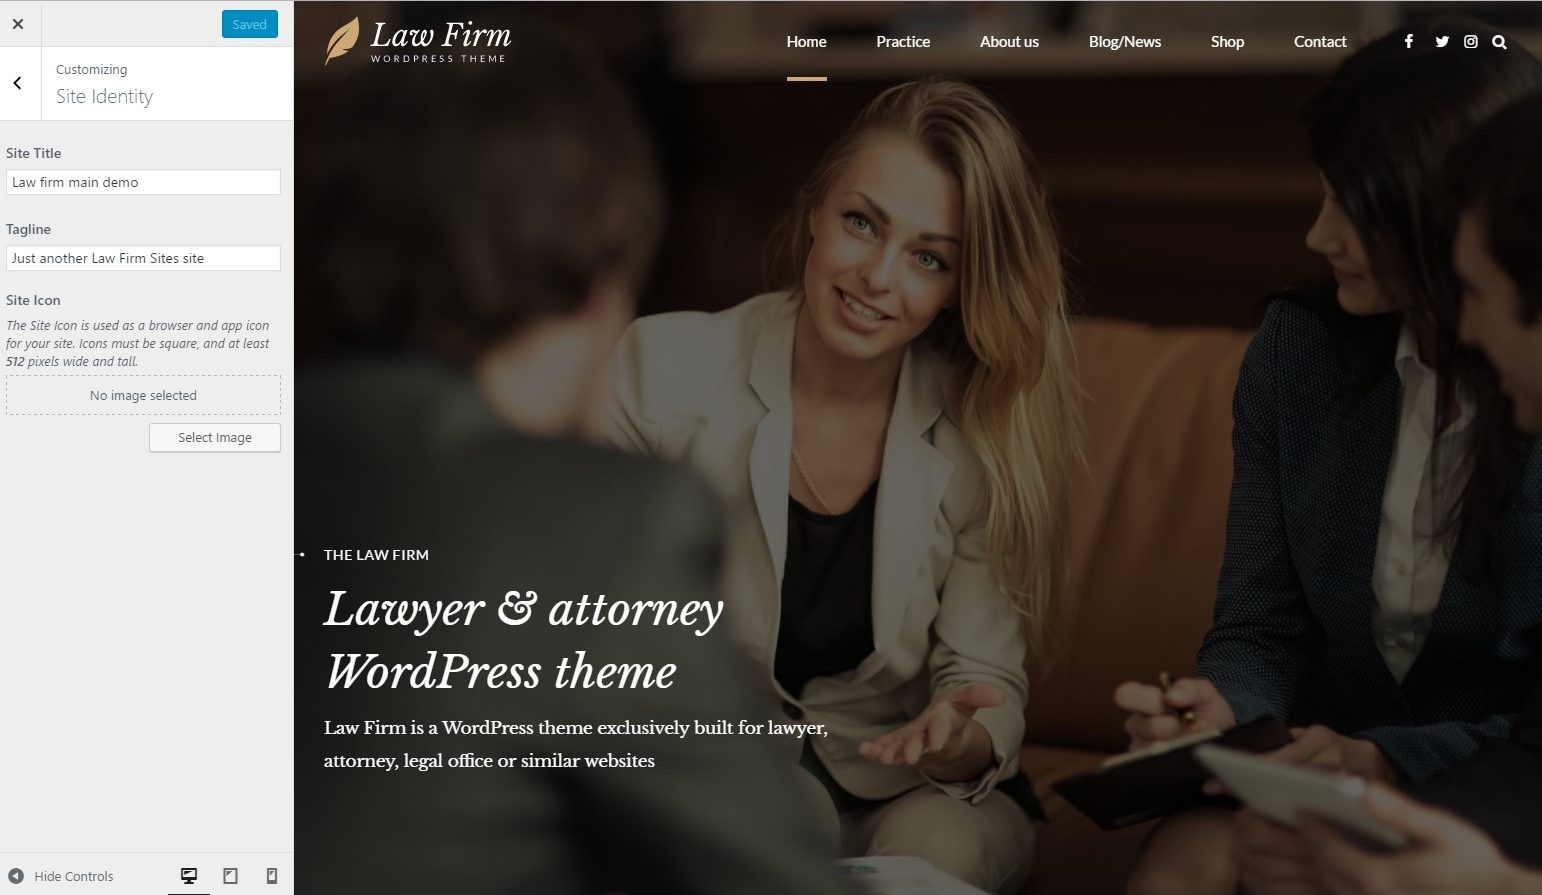 http://documentation.bold-themes.com/law-firm/wp-content/uploads/sites/15/2017/05/19-1-e1496309899660.jpg